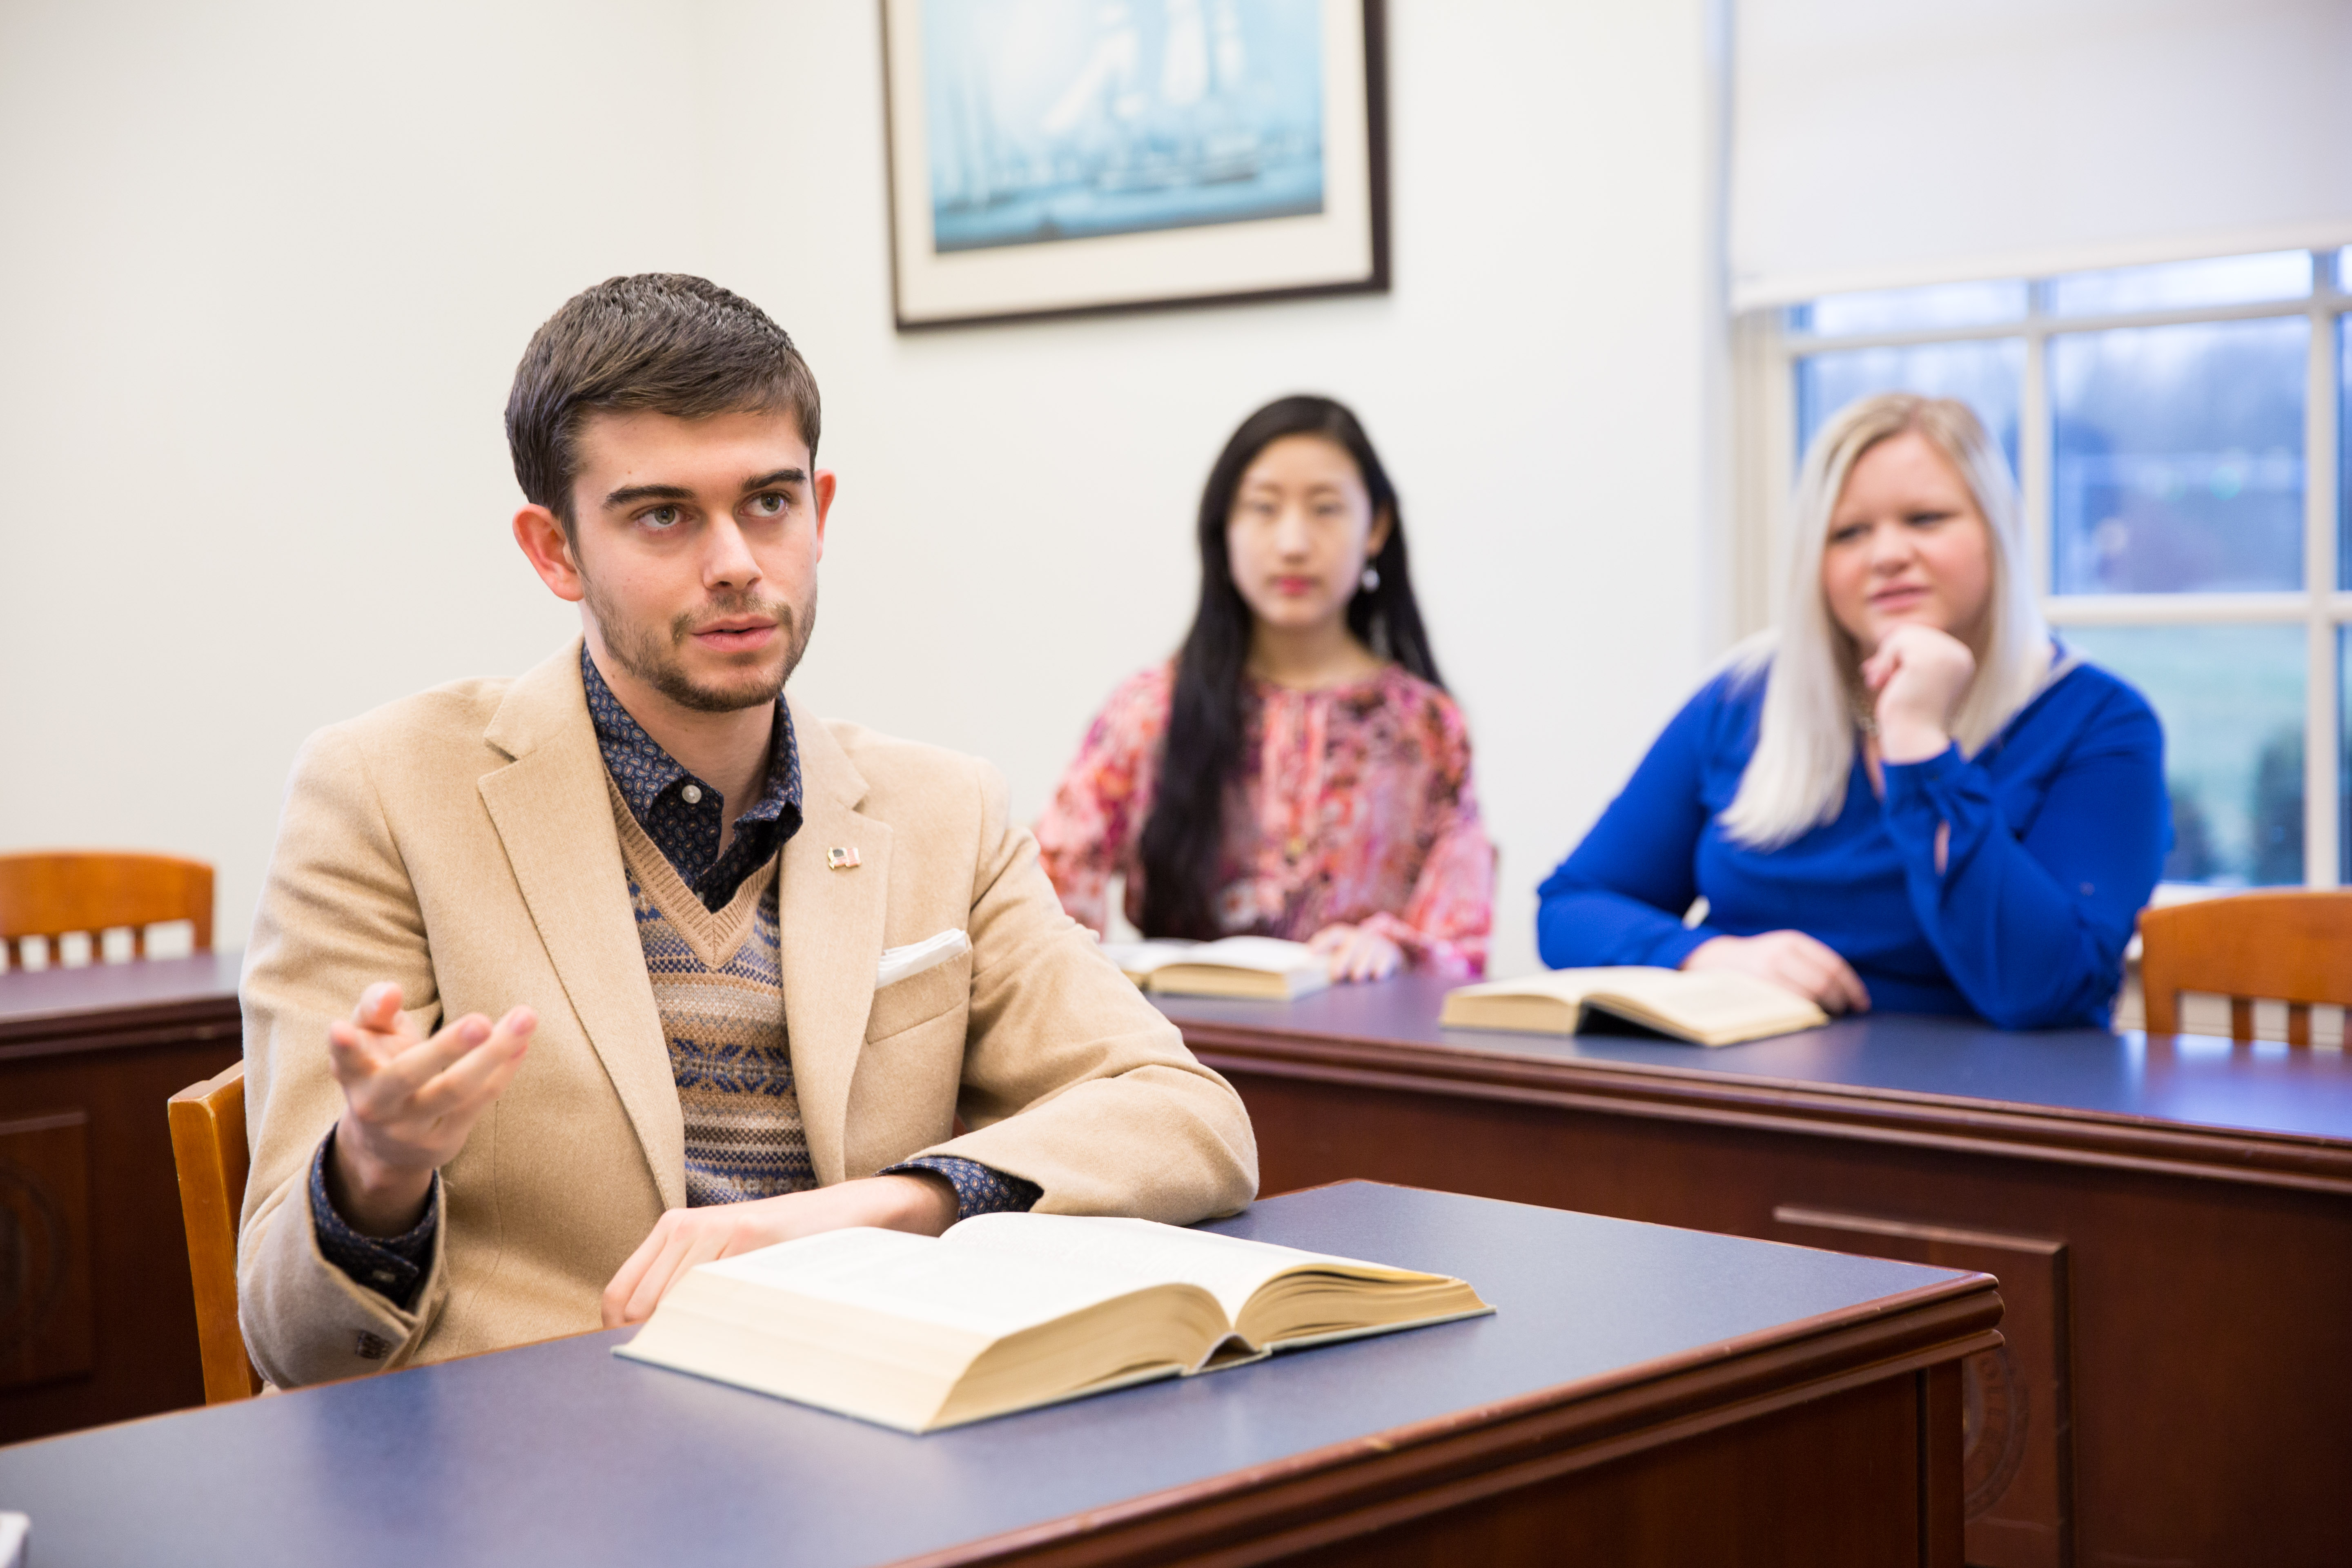 Patrick Henry College students ask questions in class, academic life at PHC